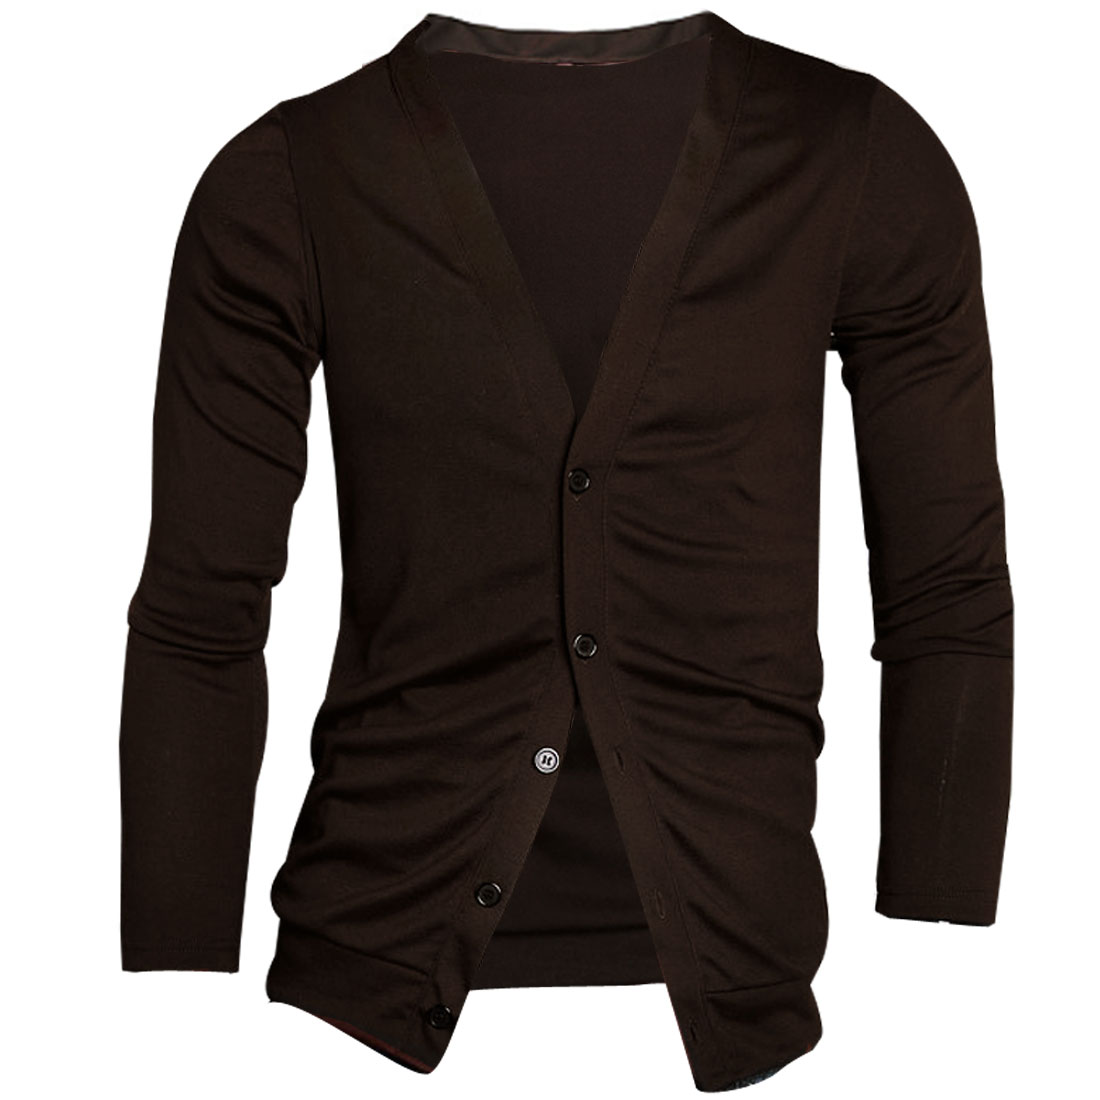 Mens Dark Chocolate Color Button Down Simple Style Stretchy Autumn Fit Cardigan S